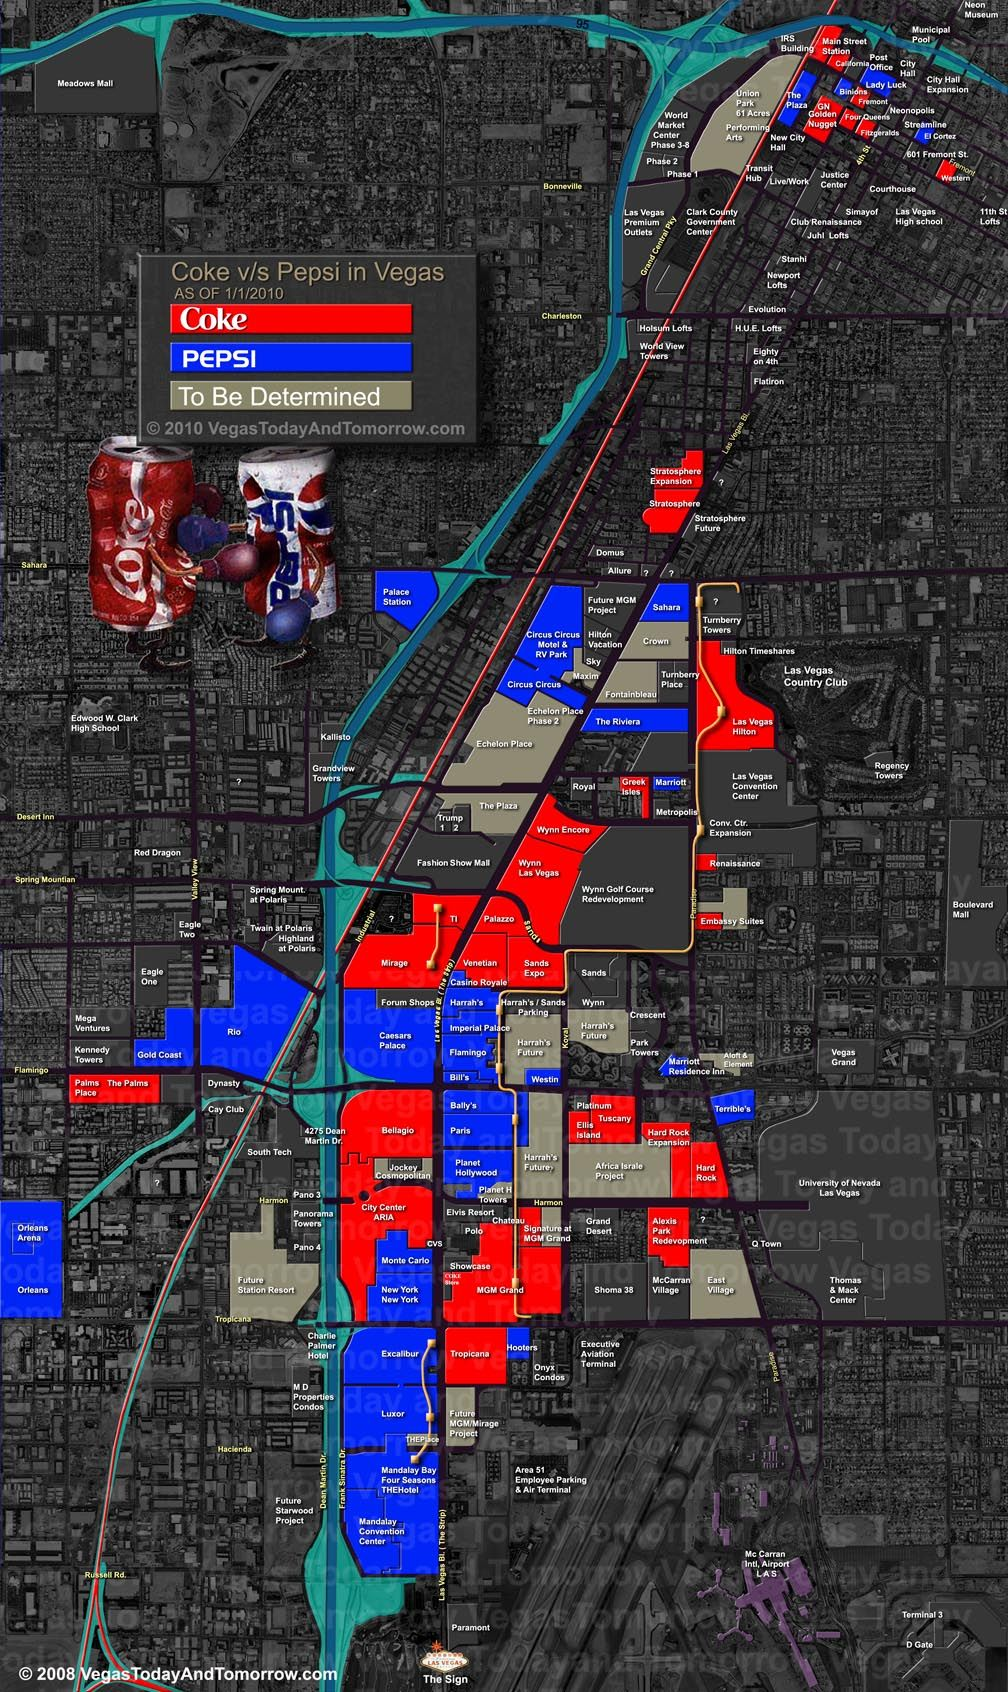 vegas coke or pepsi map vegas maps and pepsi vegas coke or pepsi map